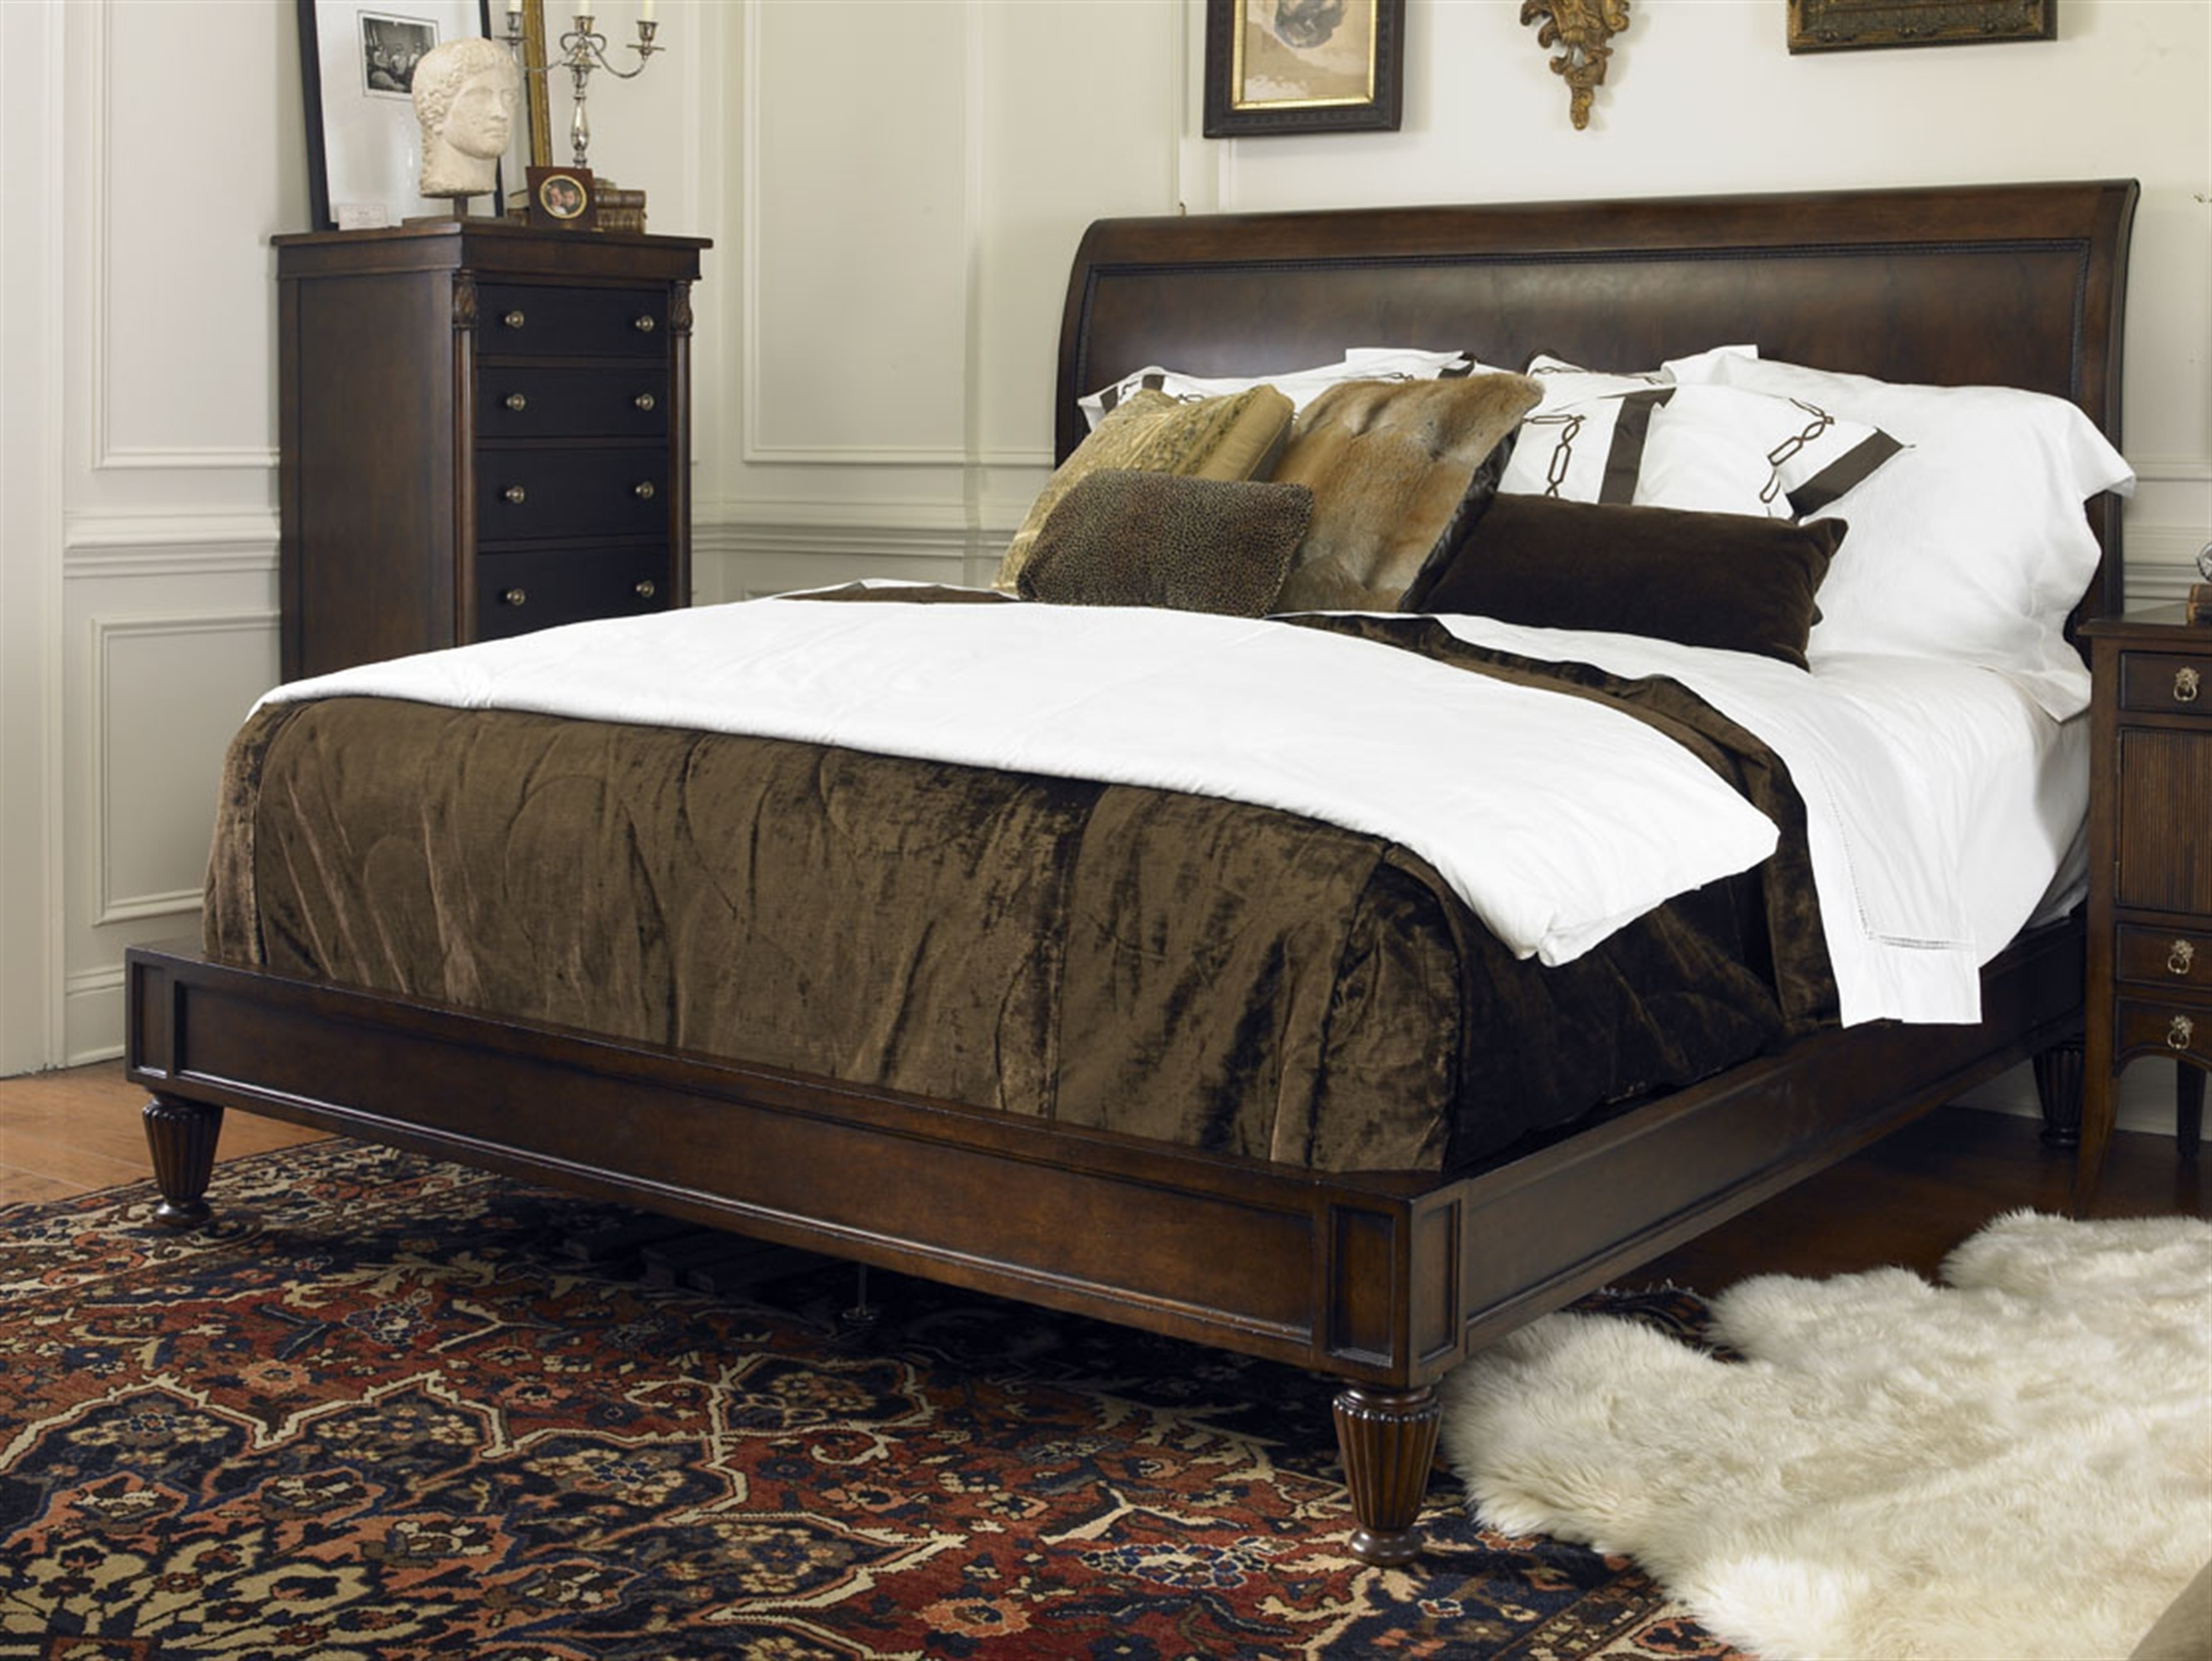 chelsea club knightsbridge platform bed king size 6 6. Black Bedroom Furniture Sets. Home Design Ideas